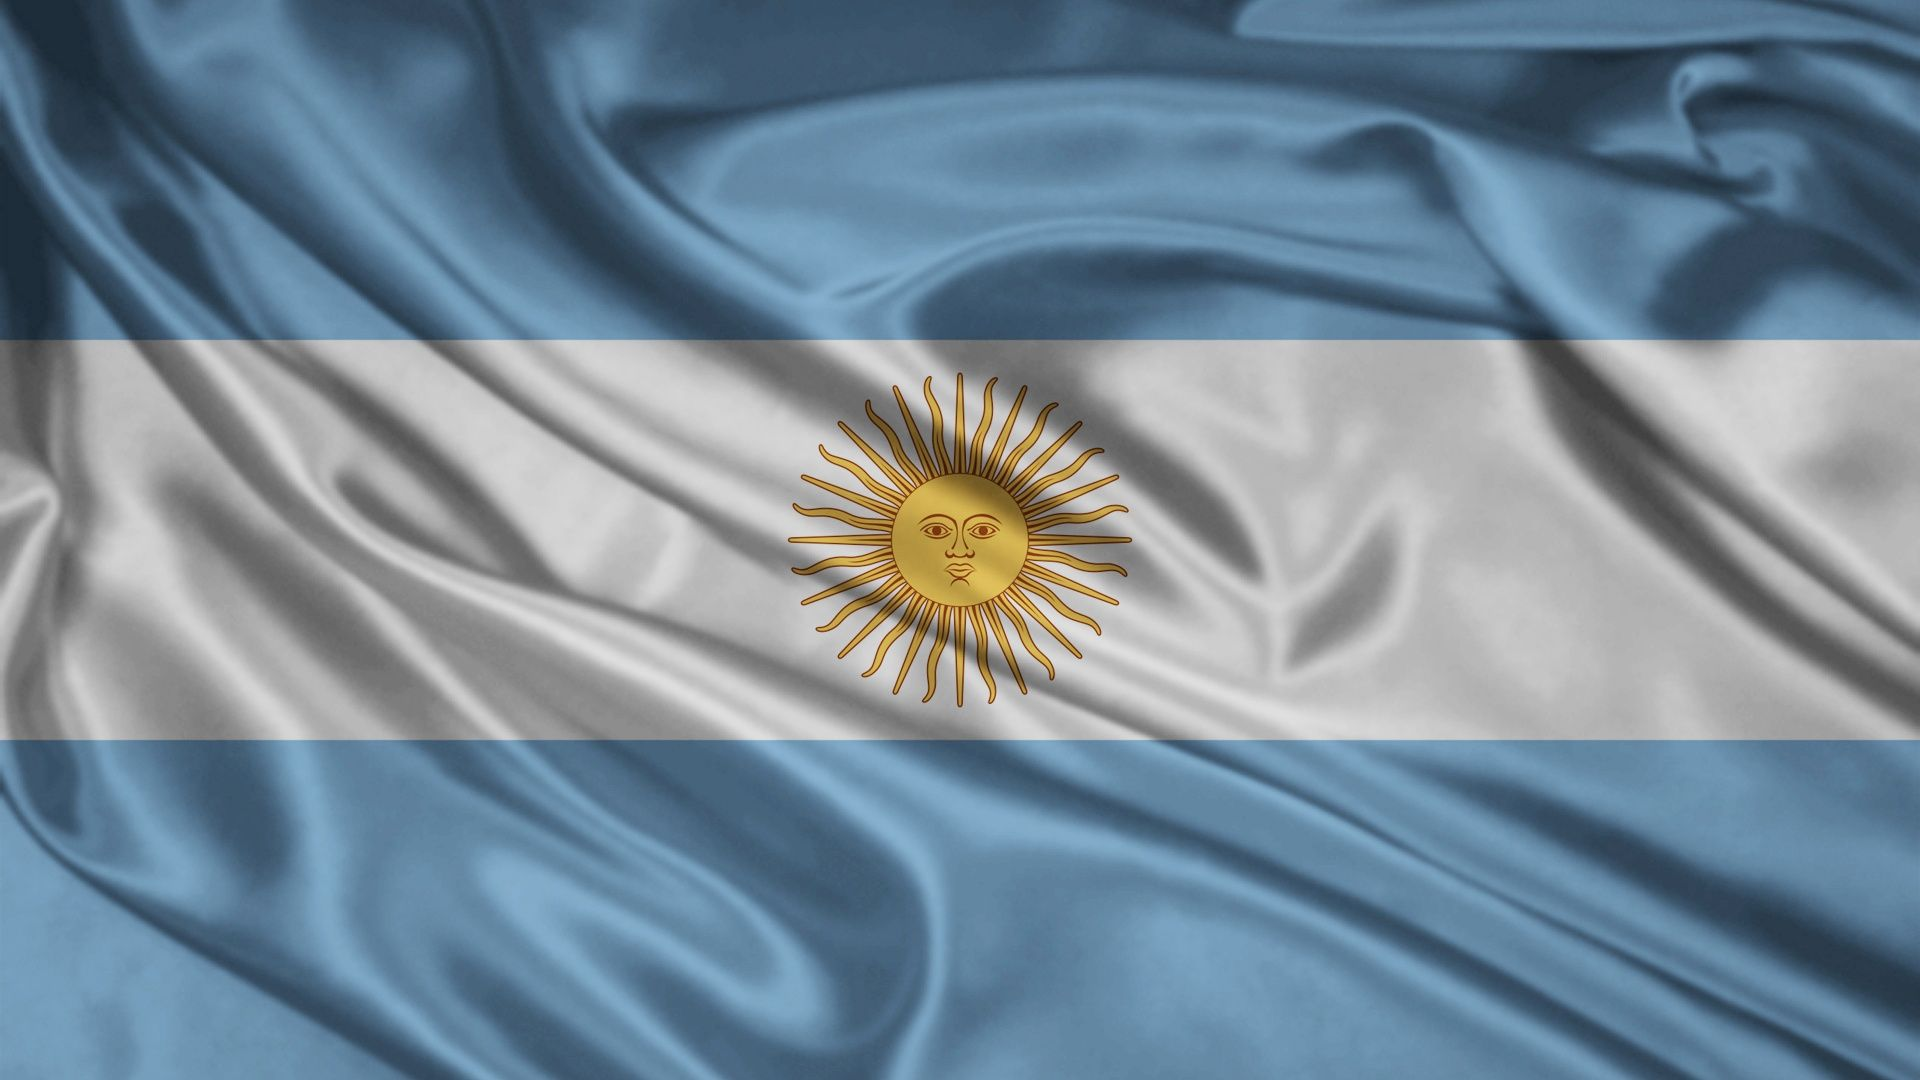 World Cup Participant Argentina Flag 2014 Photo Gallery Argentina Bendera